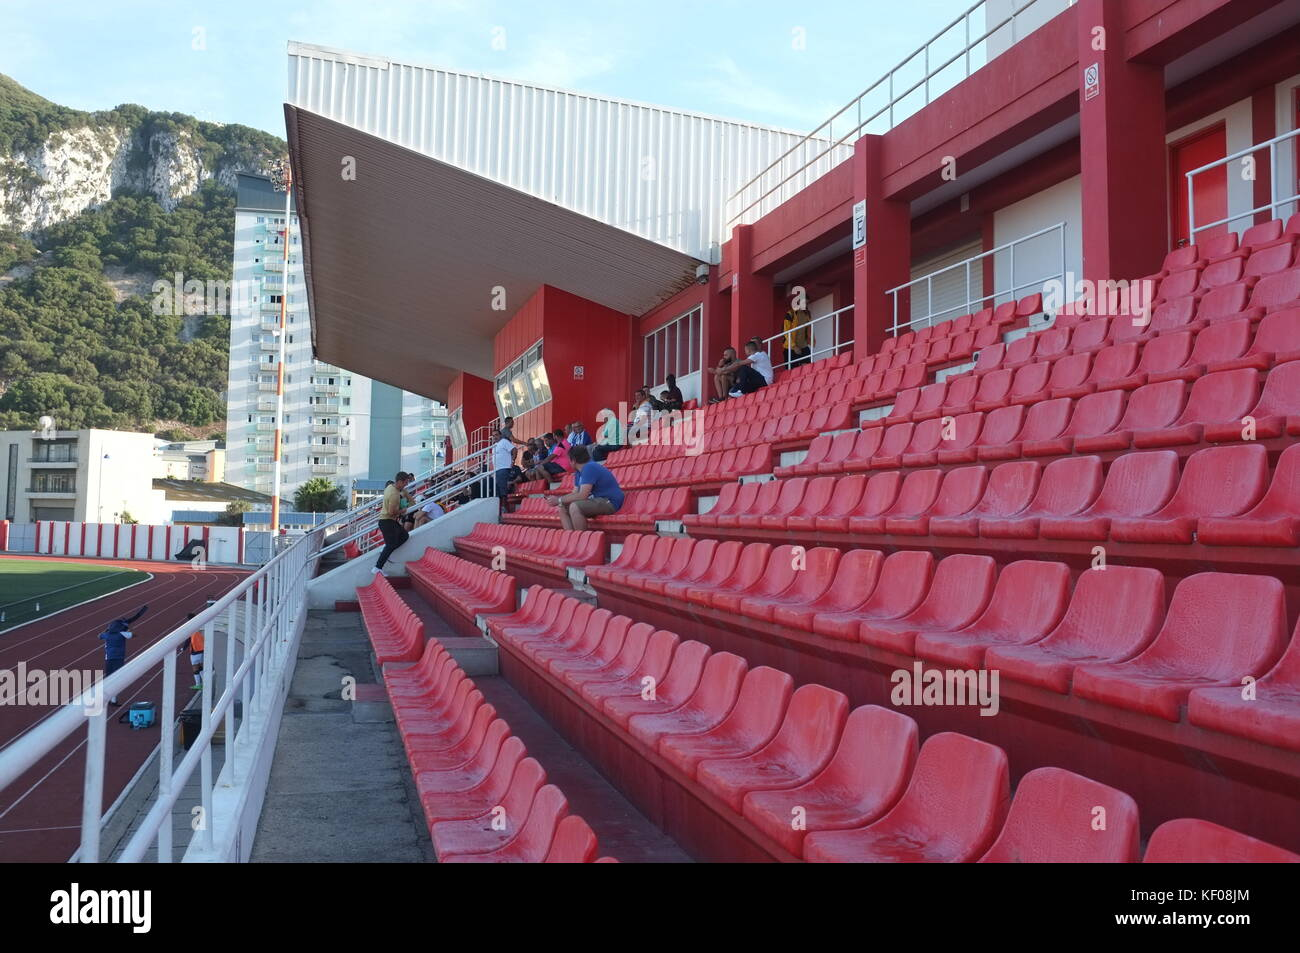 Main stand at Victoria Stadium, Gibraltar, September 2017 - Stock Image